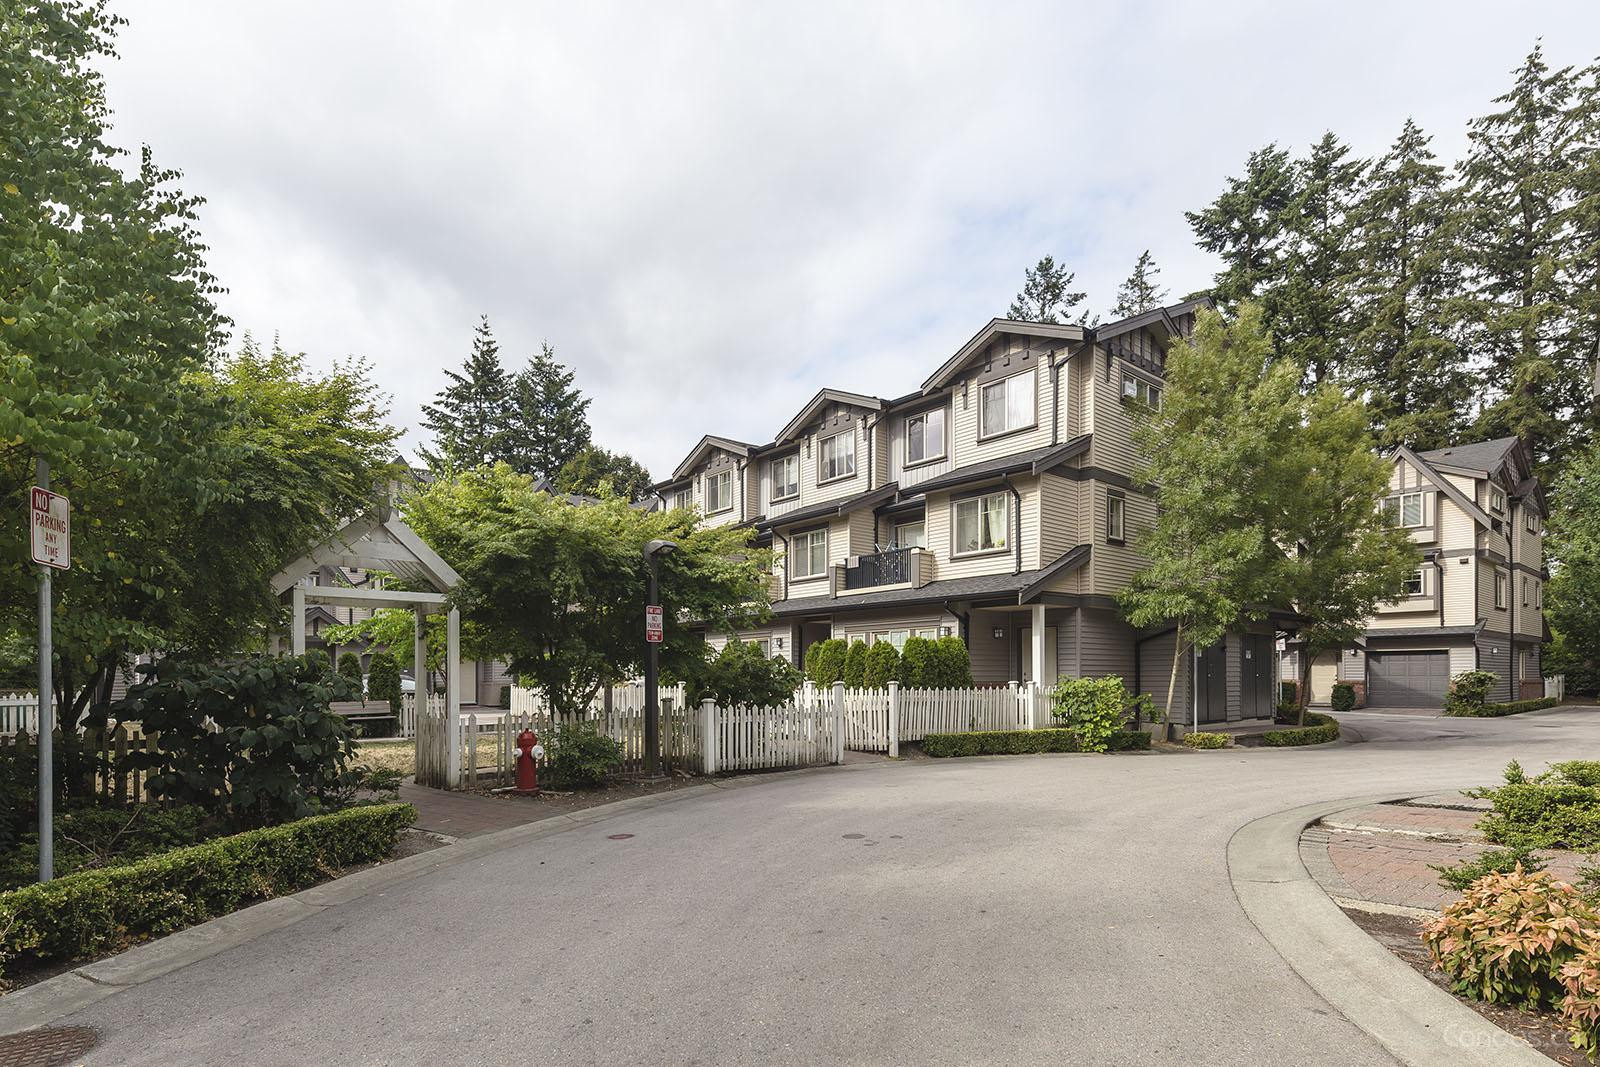 Crafton Hill at 13368 72 Ave, Surrey 1